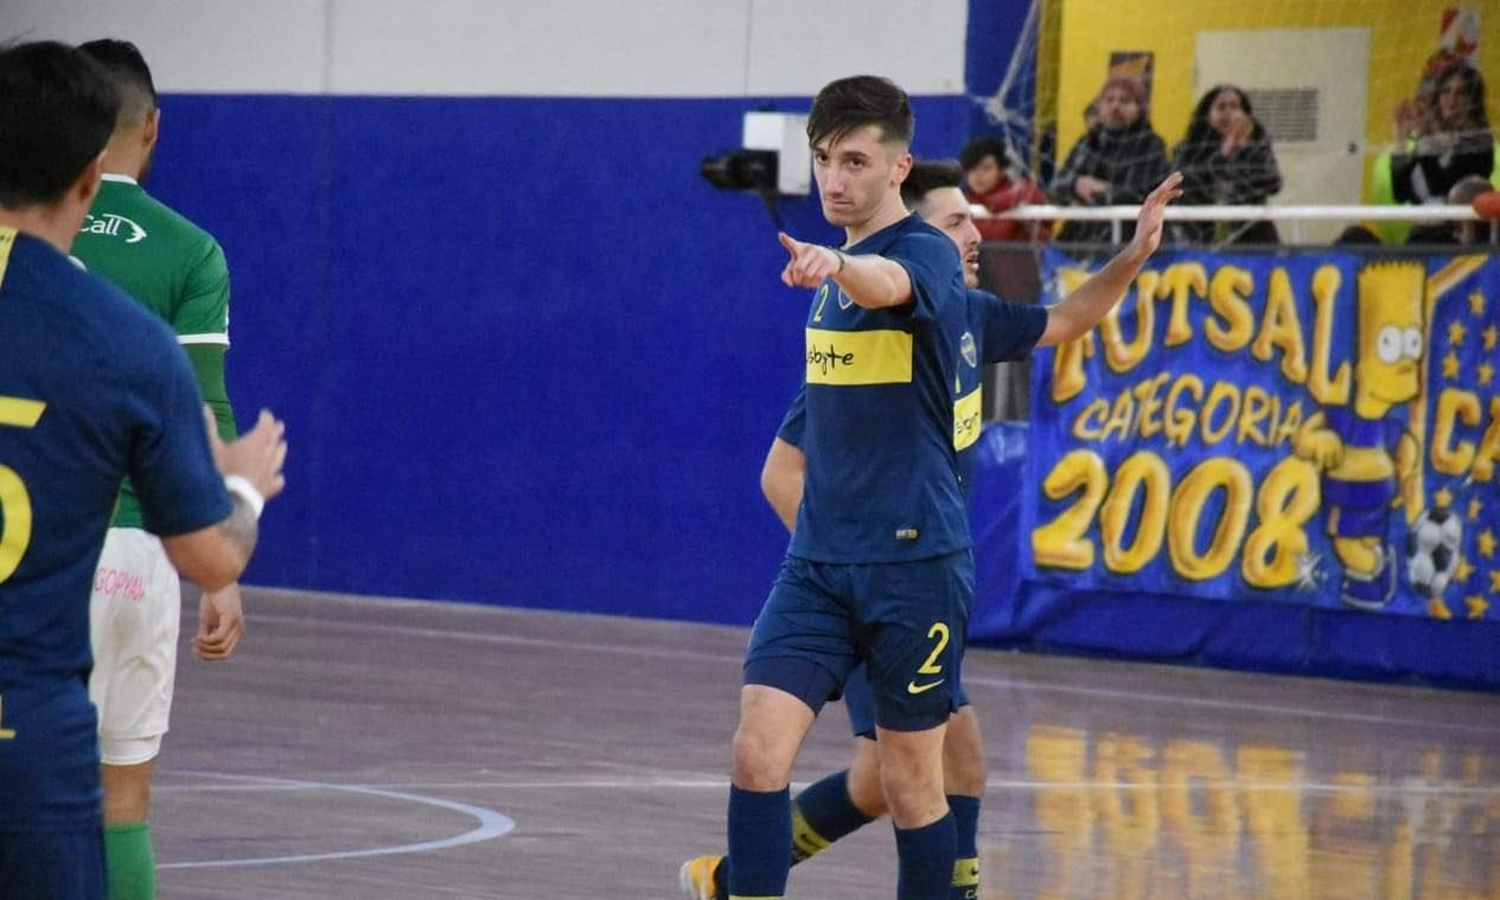 Sigue de racha: Boca goleó a Independiente y es puntero absoluto